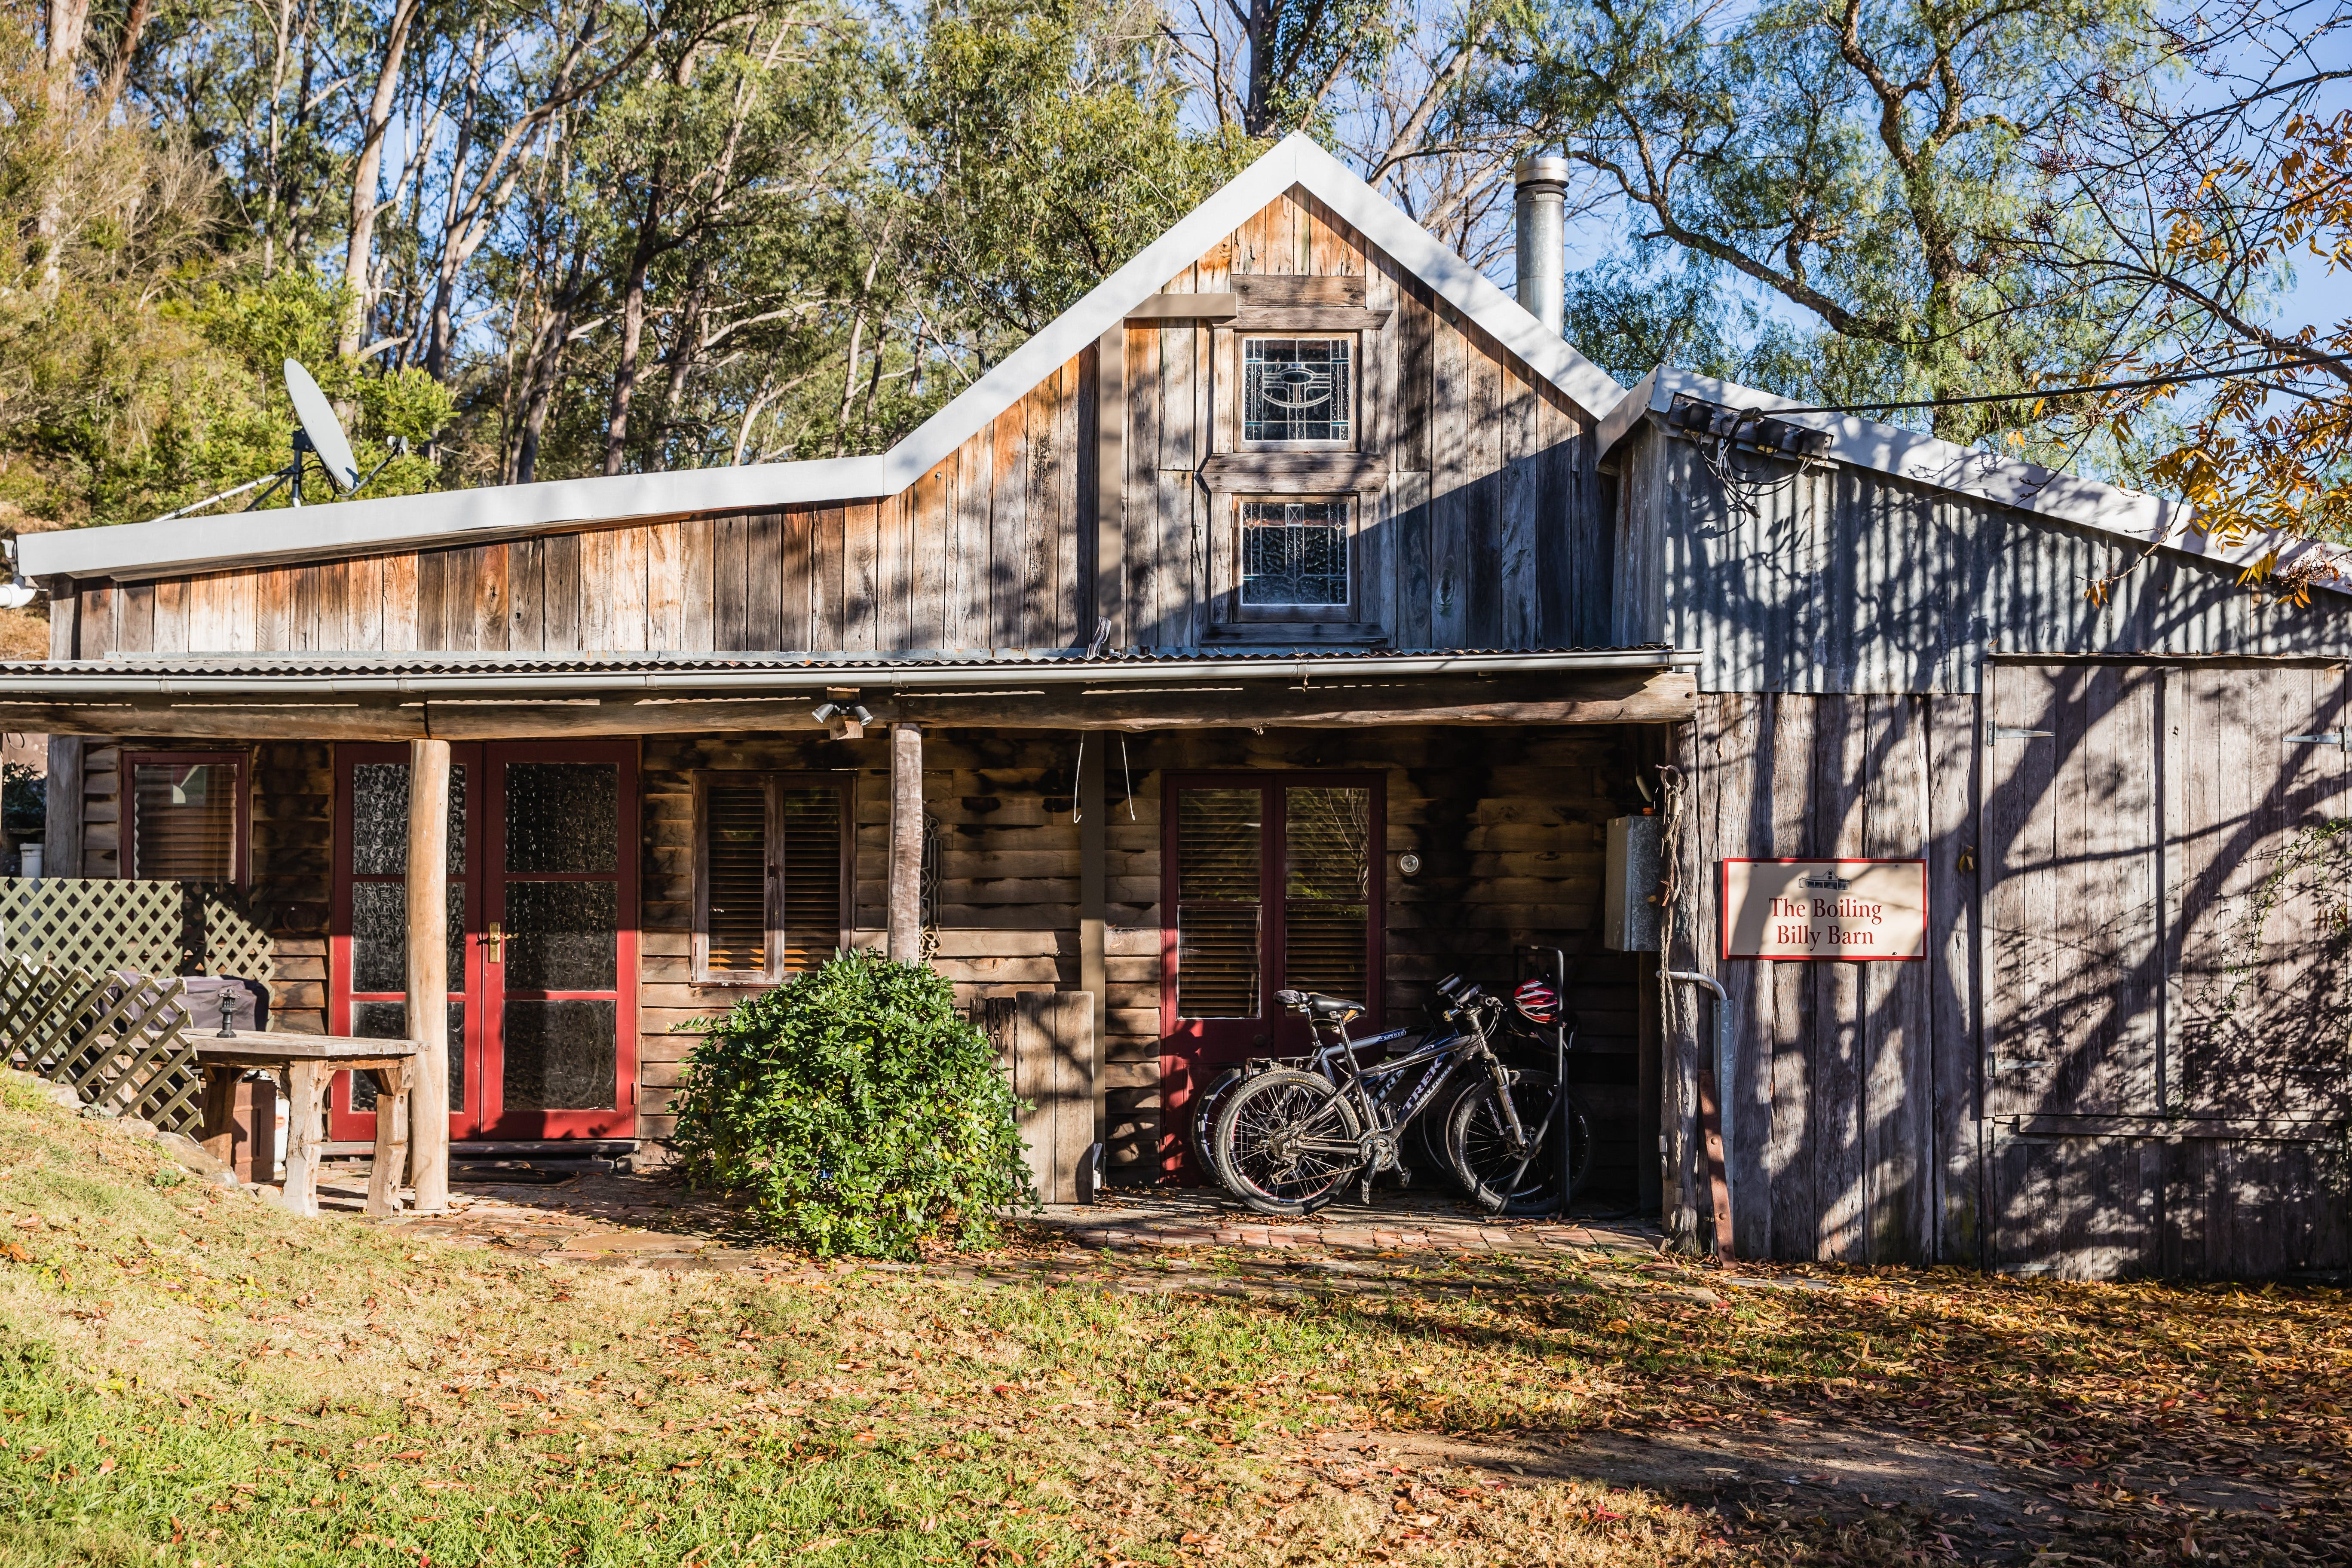 The Boiling Billy Barn - Lennox Head Accommodation